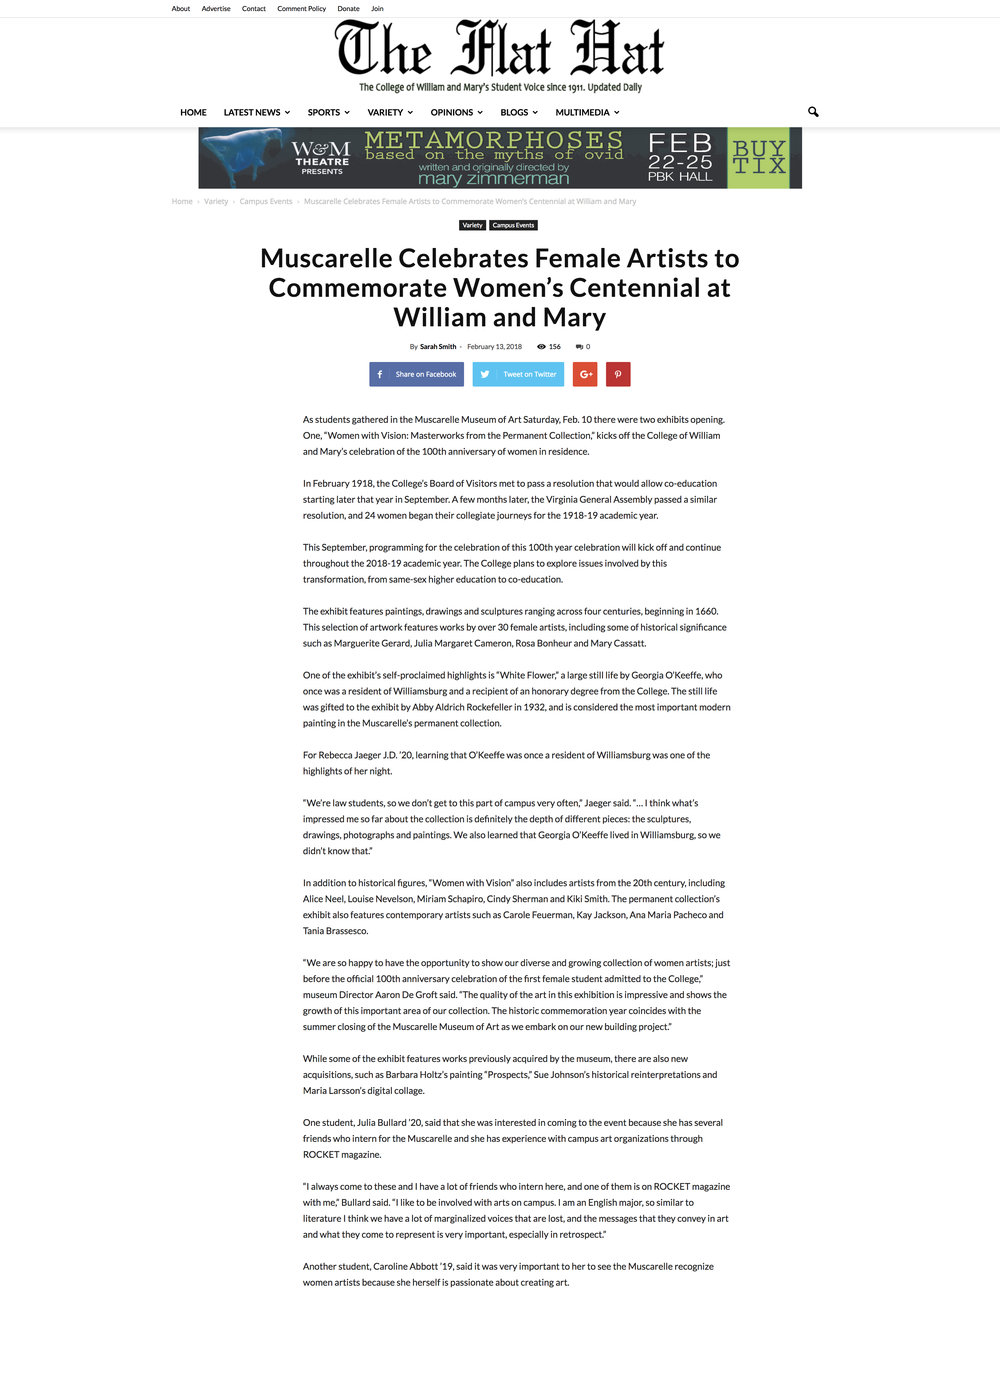 Muscarelle Celebrates Female Artists to Commemorate Women's Centennial at William and Mary